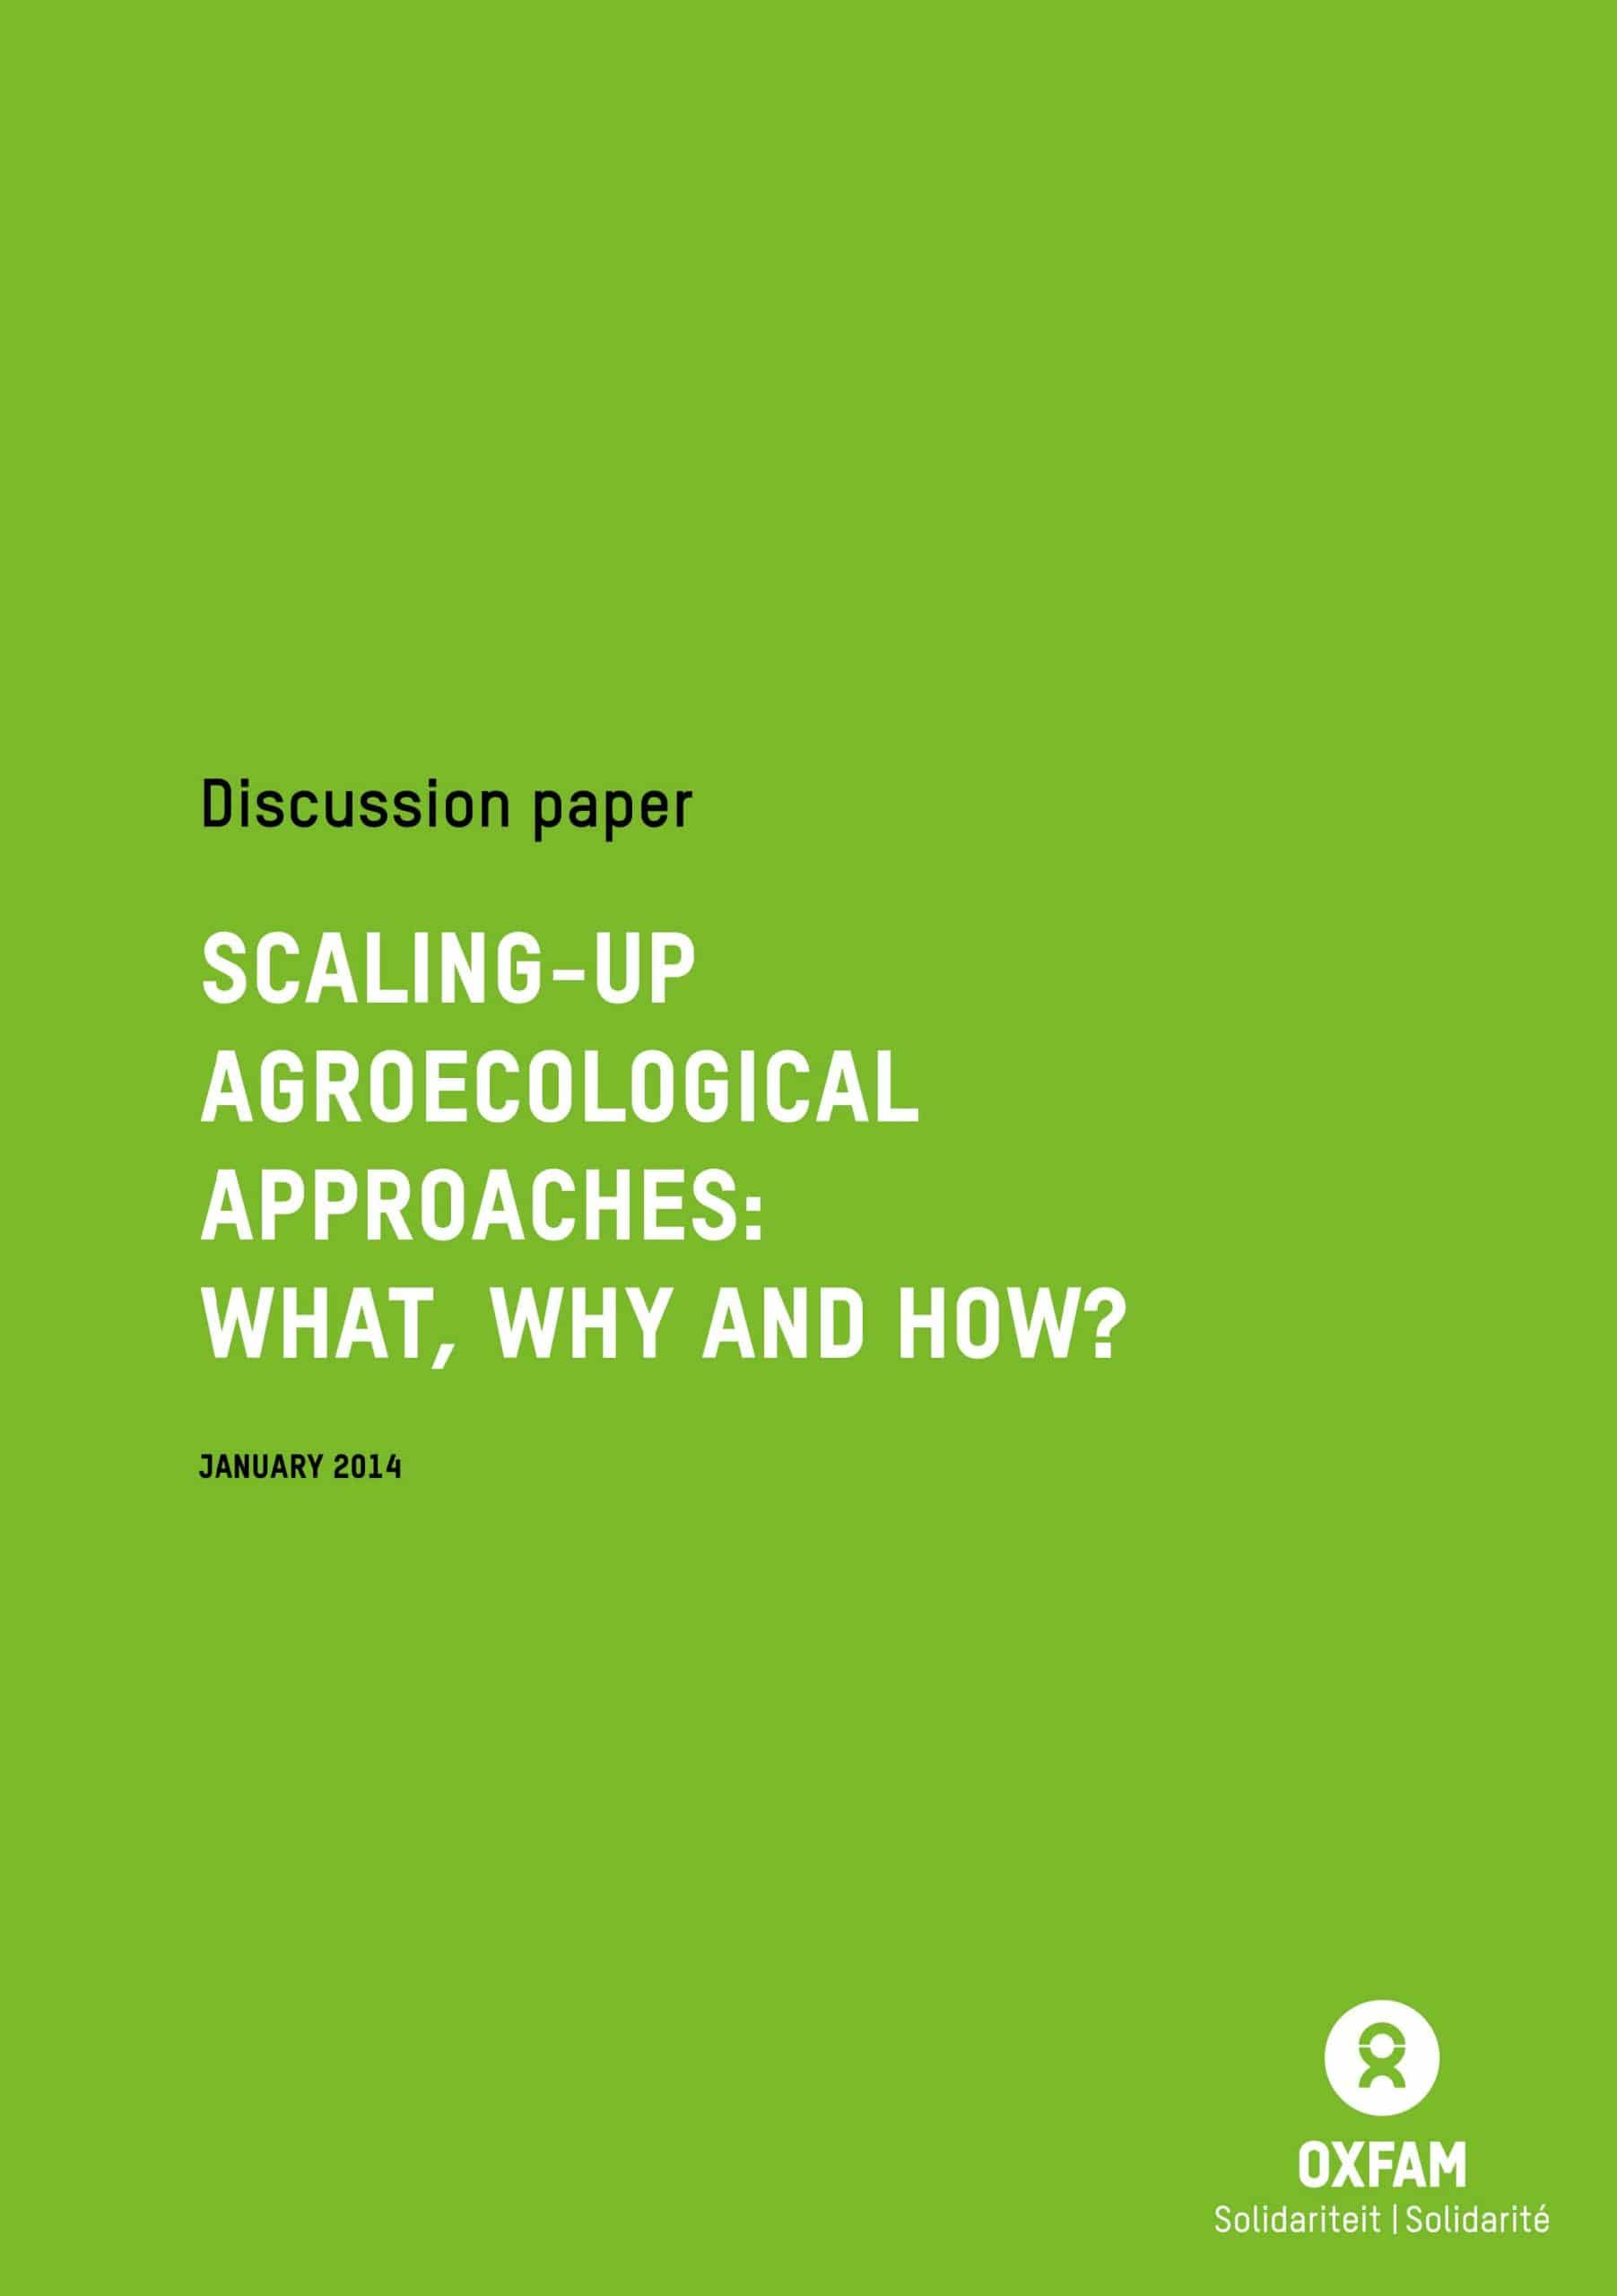 Oxfam Belgique : Scaling-up agroecological approaches: what, why and how?